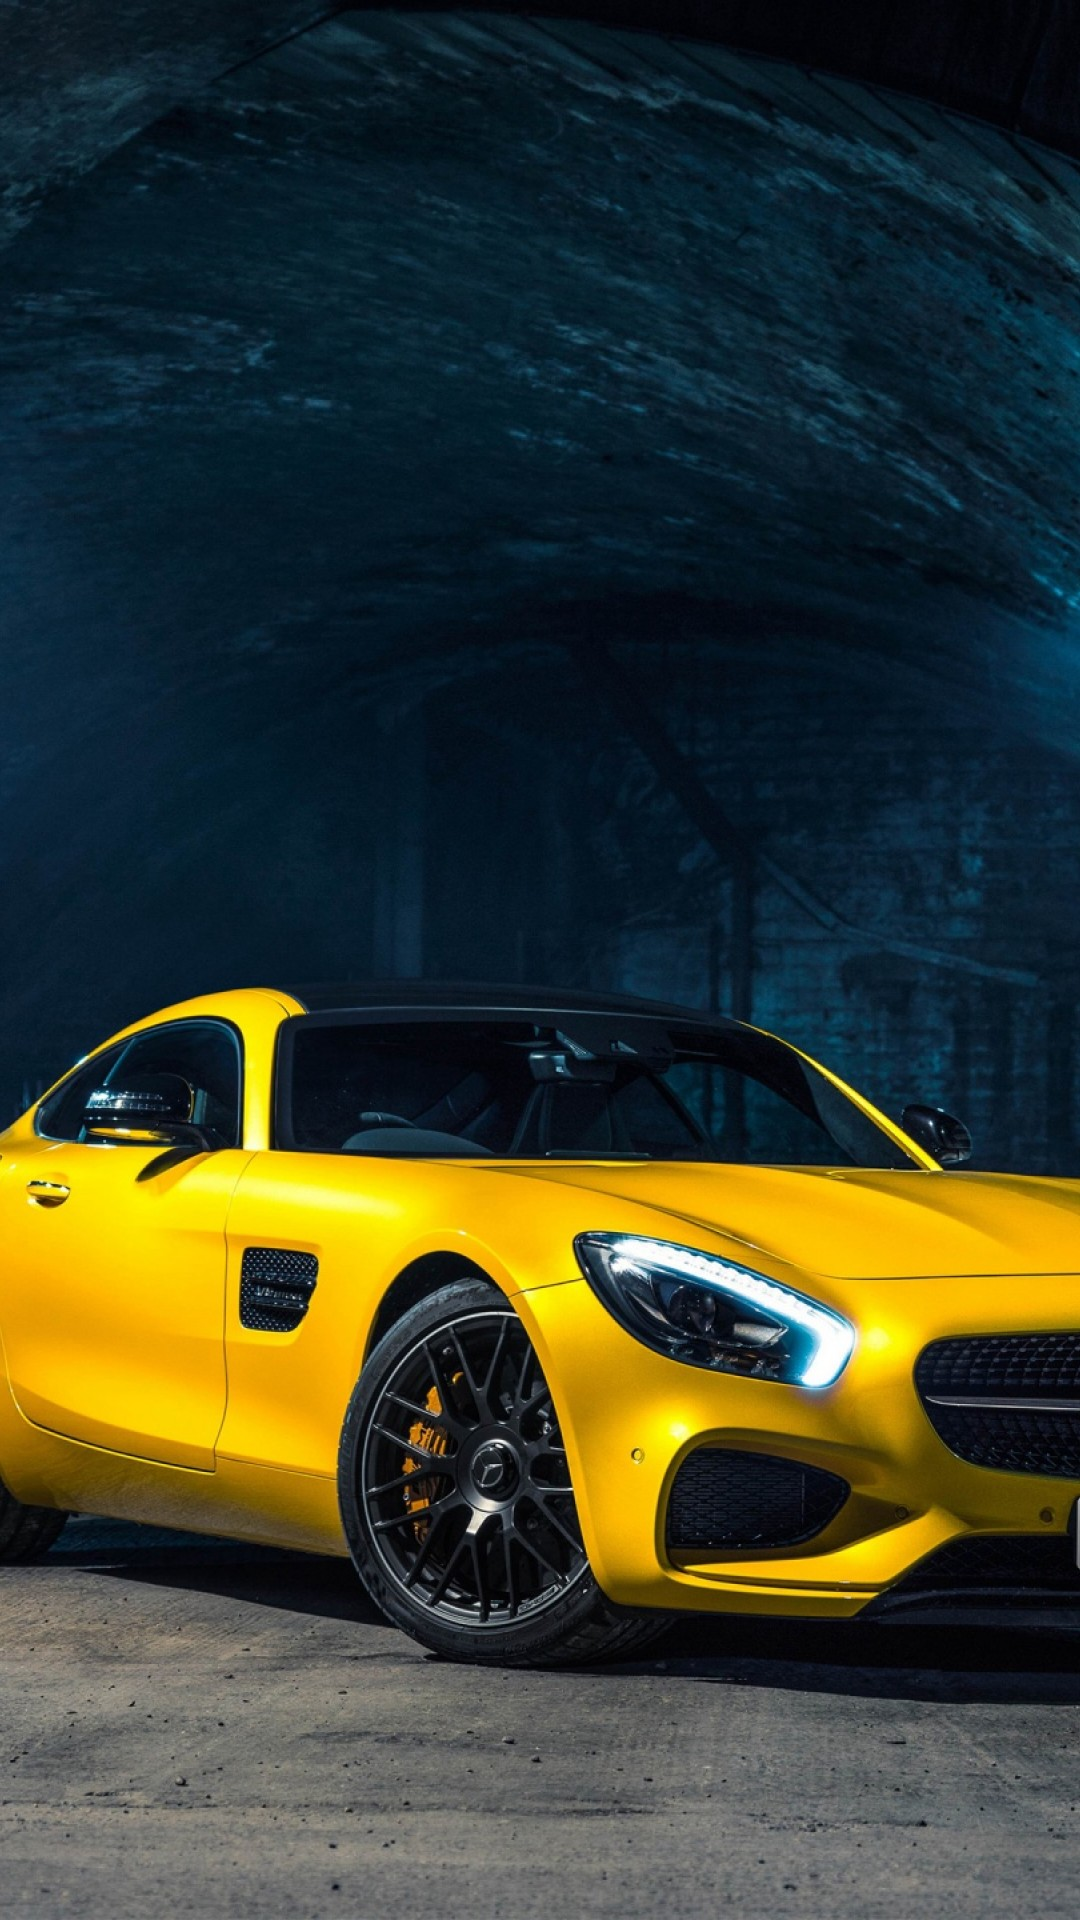 Mercedes Amg Iphone Wallpaper - Awesome Wallpapers